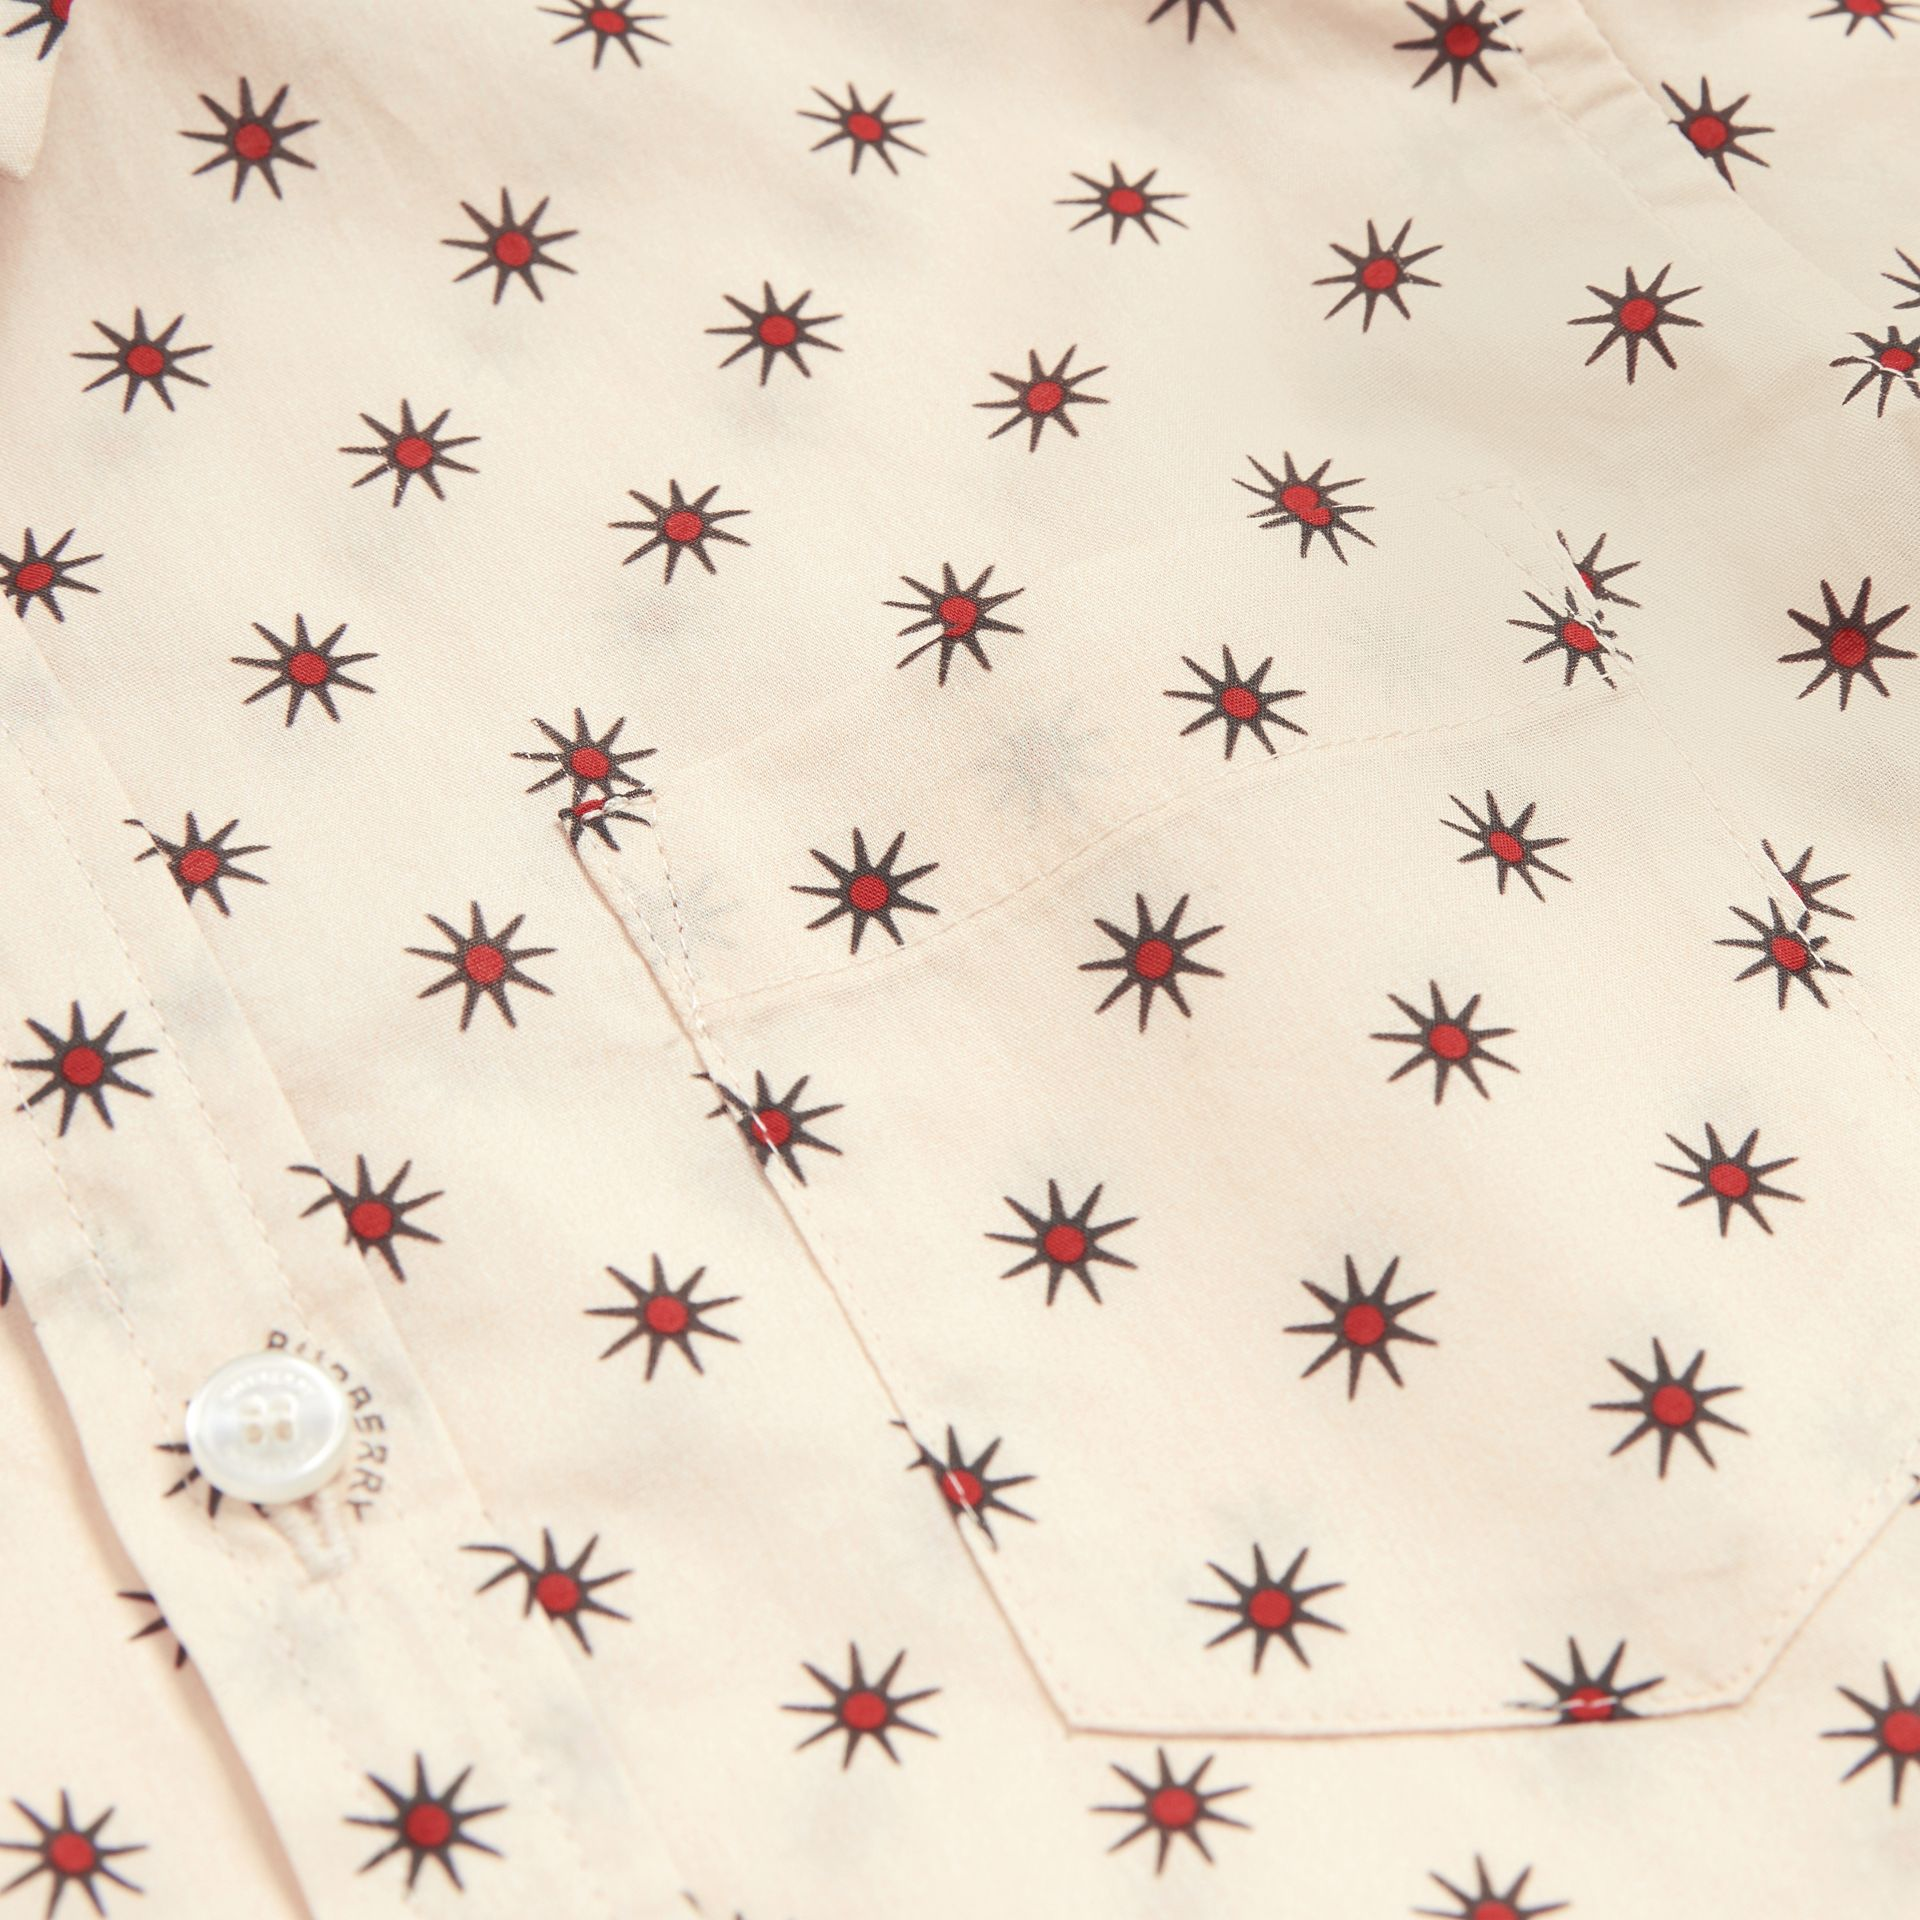 Star Print Cotton Shirt in Military Red | Burberry - gallery image 1